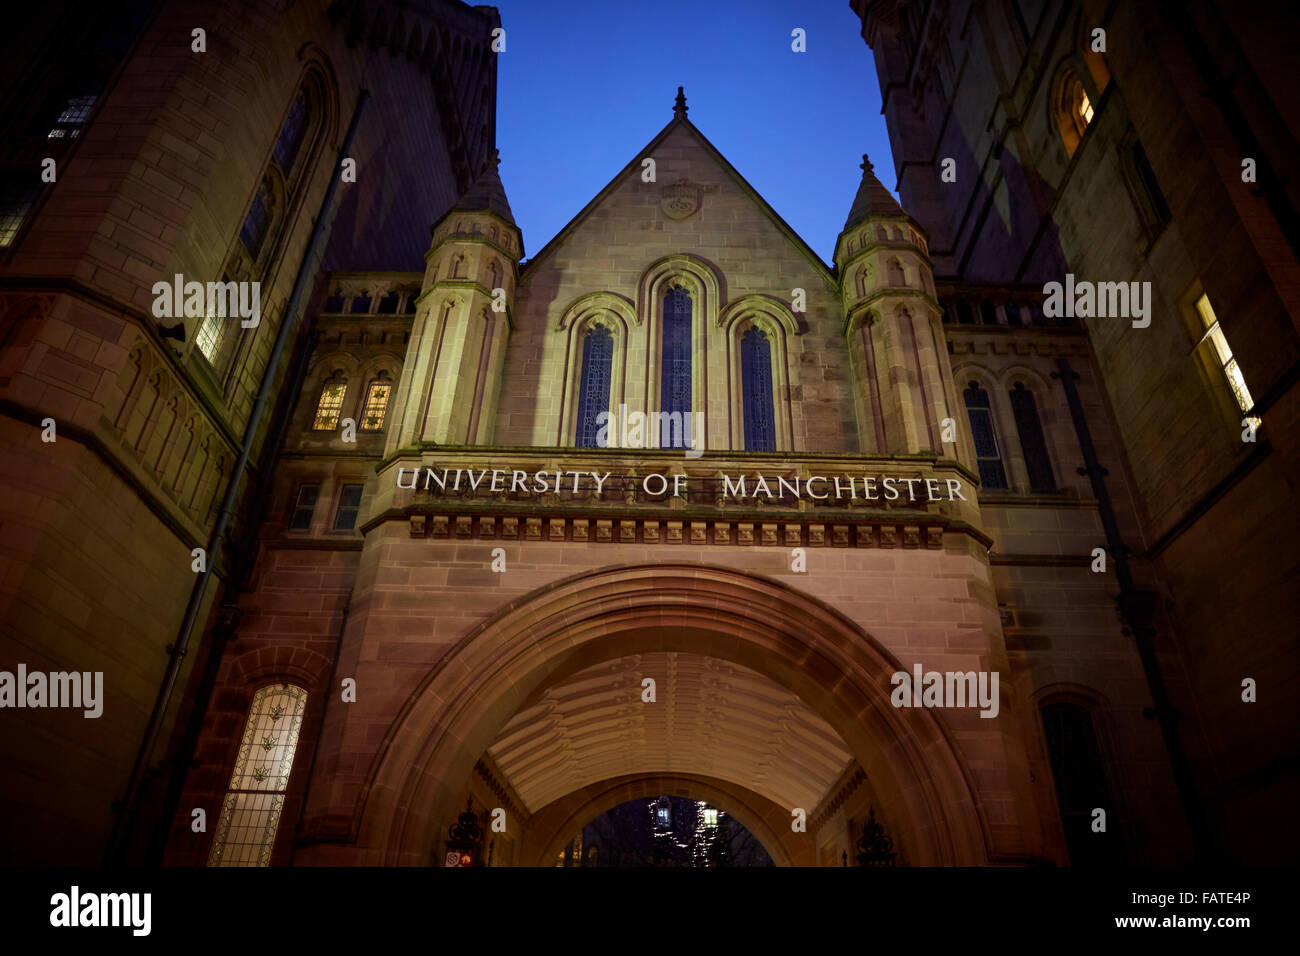 University of Manchester  Exterior  The Old Quadrangle at the University of Manchester's main campus on Oxford - Stock Image